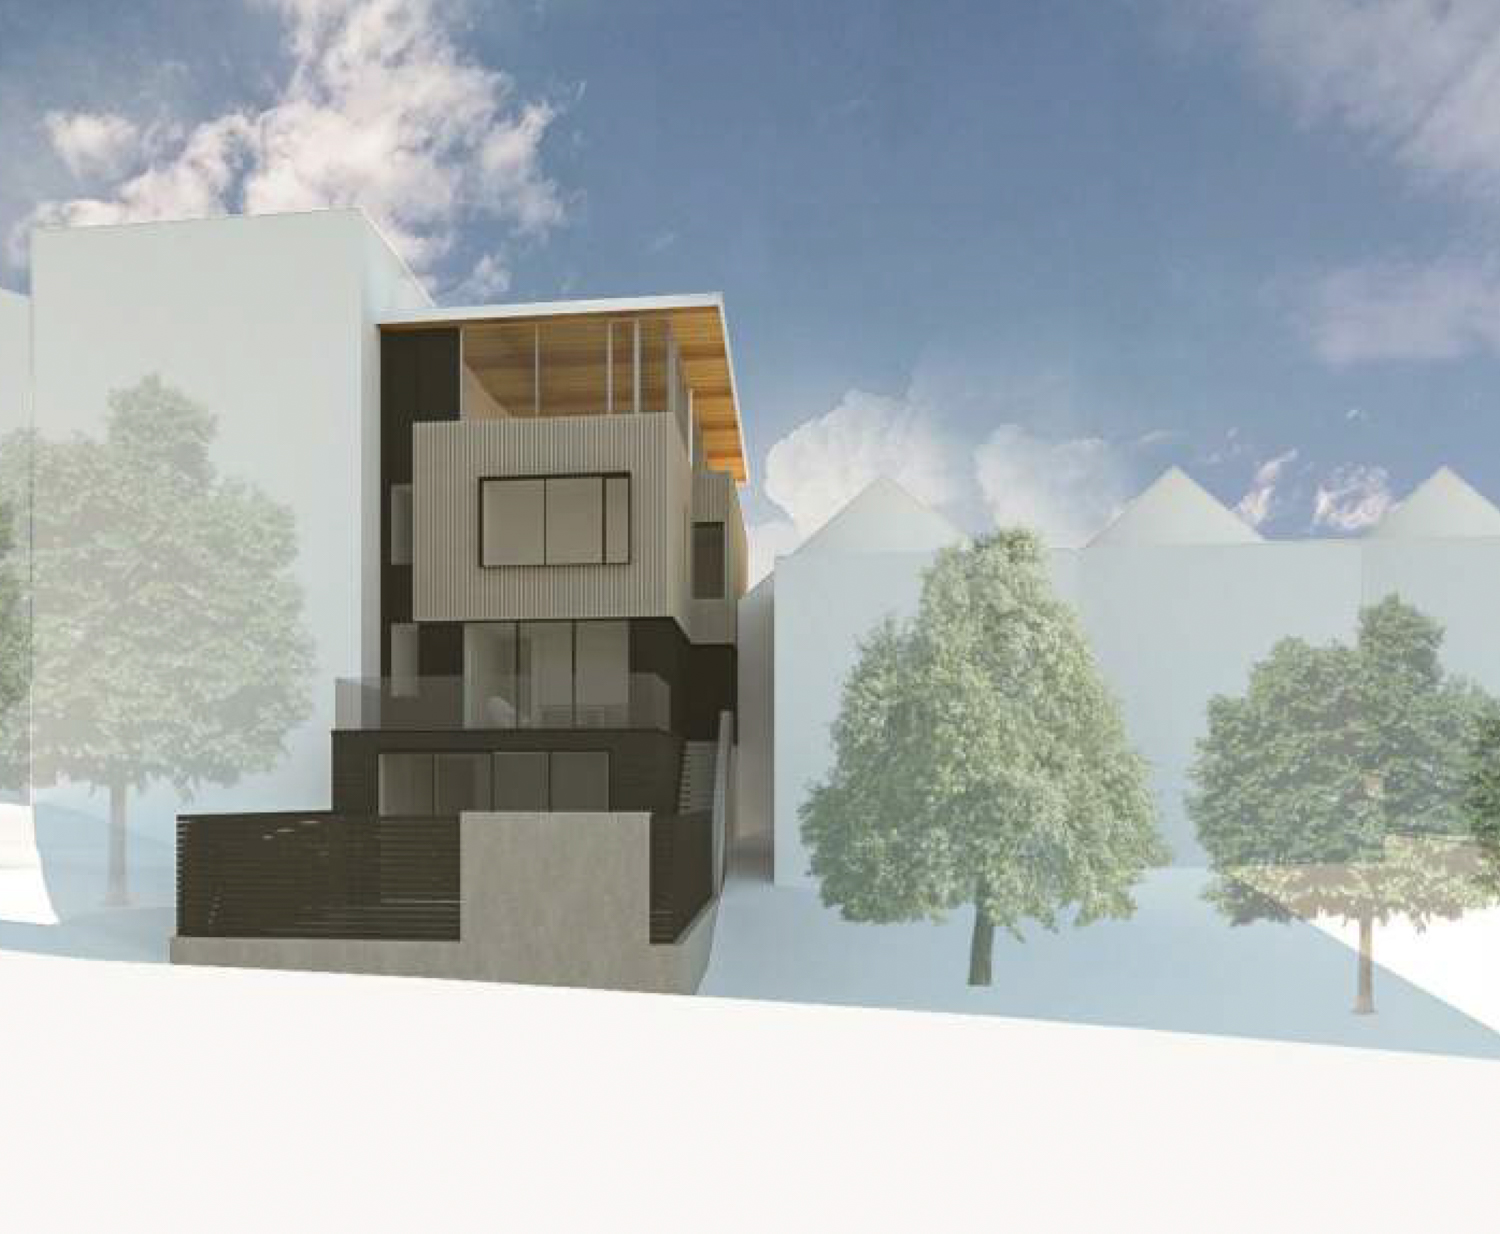 249 Texas Street rear-view isolated, rendering from John Maniscalco Architecture